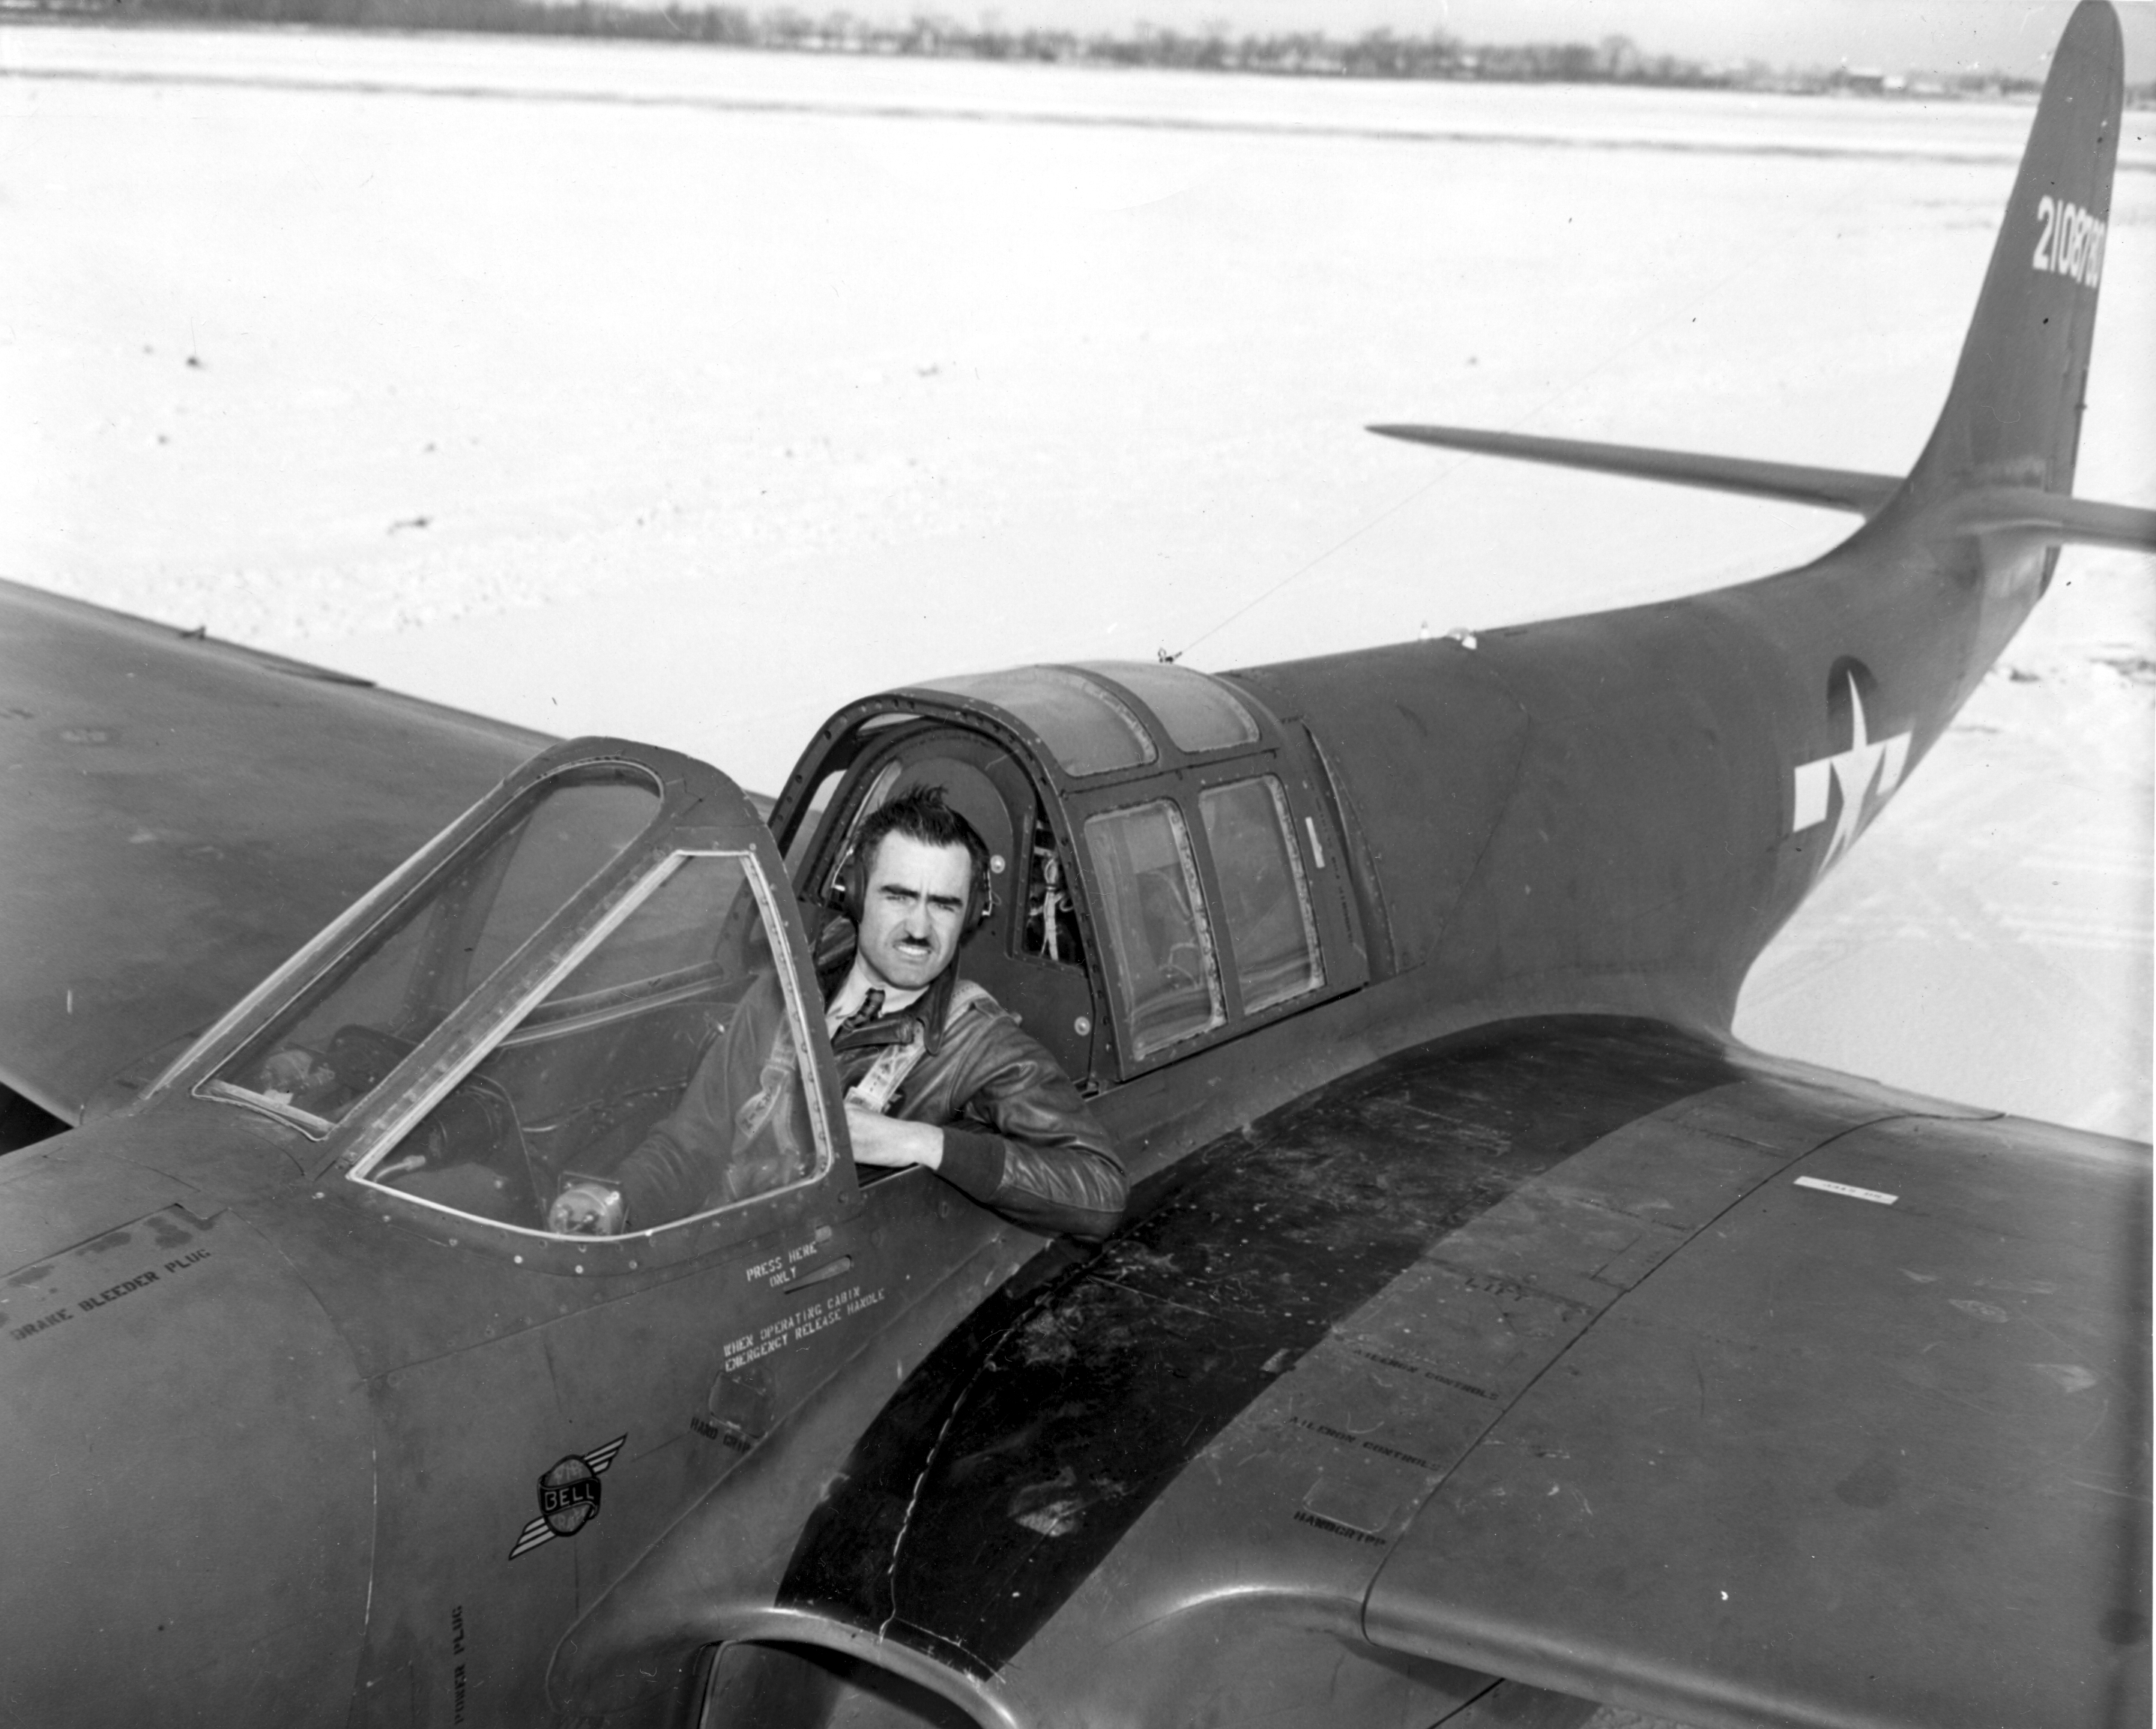 Robert M. Stanley in the Bell XP-59A Airacomet